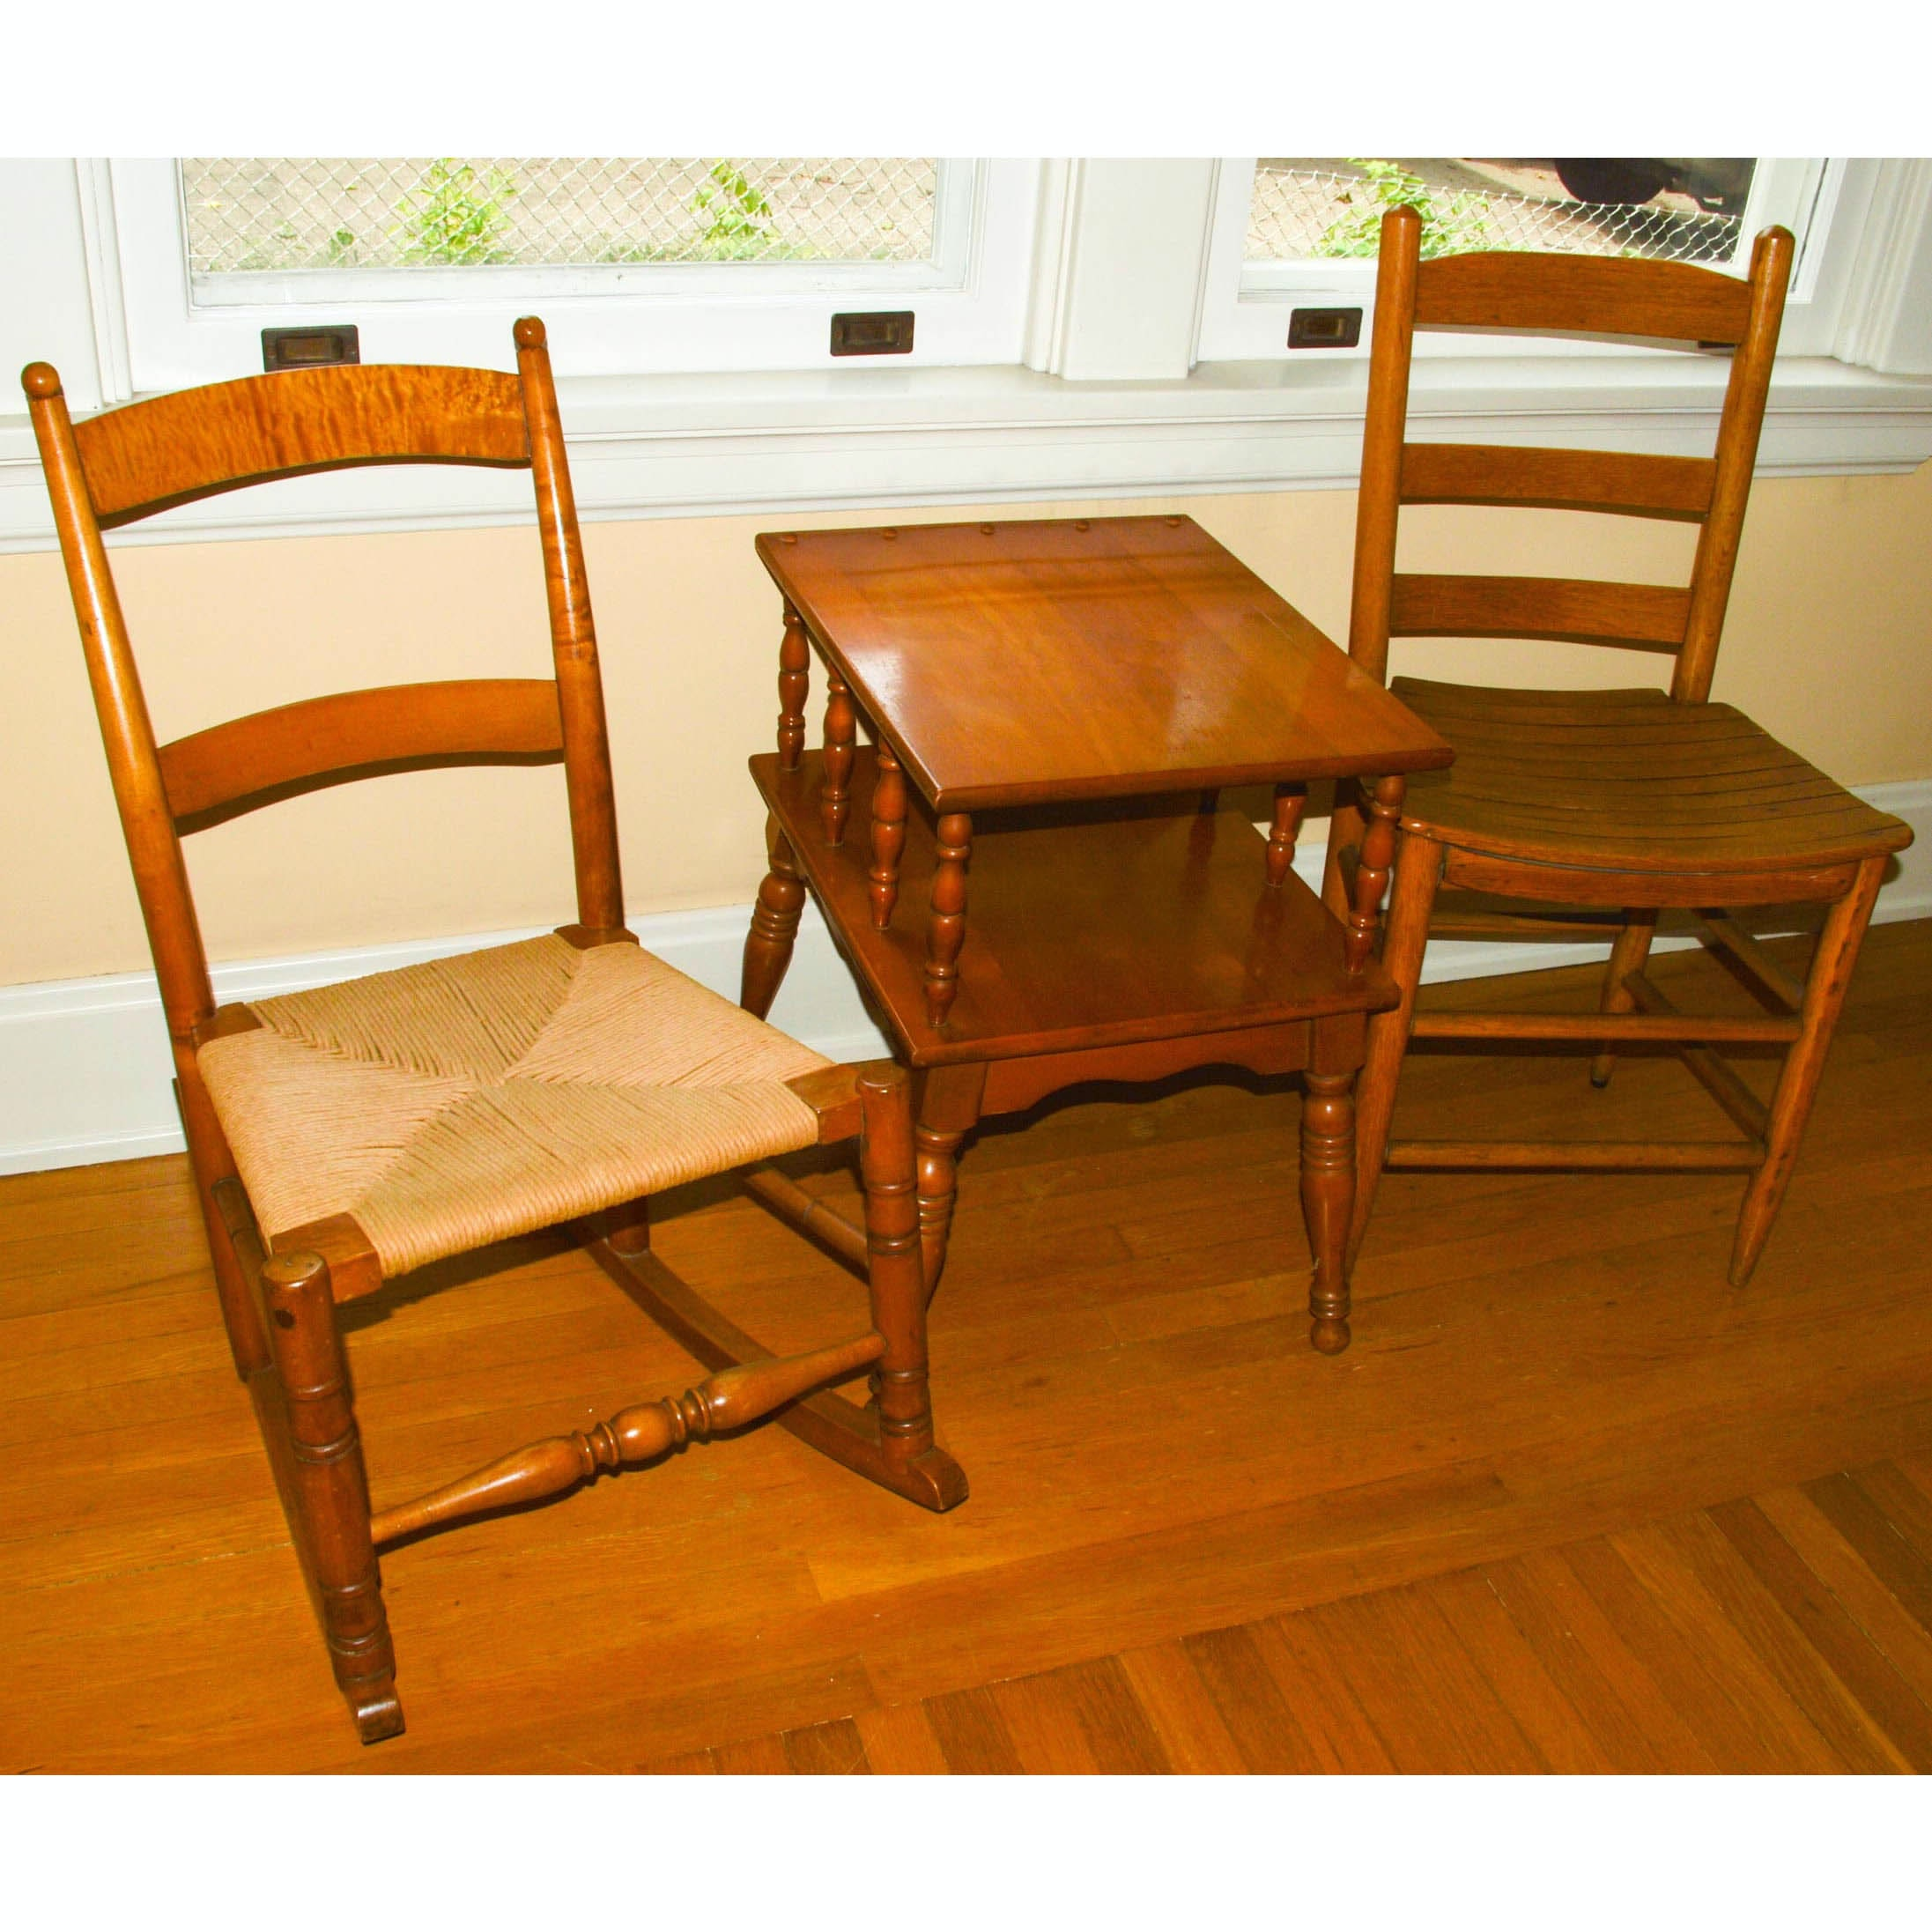 Antique Chairs With Vintage Side Table